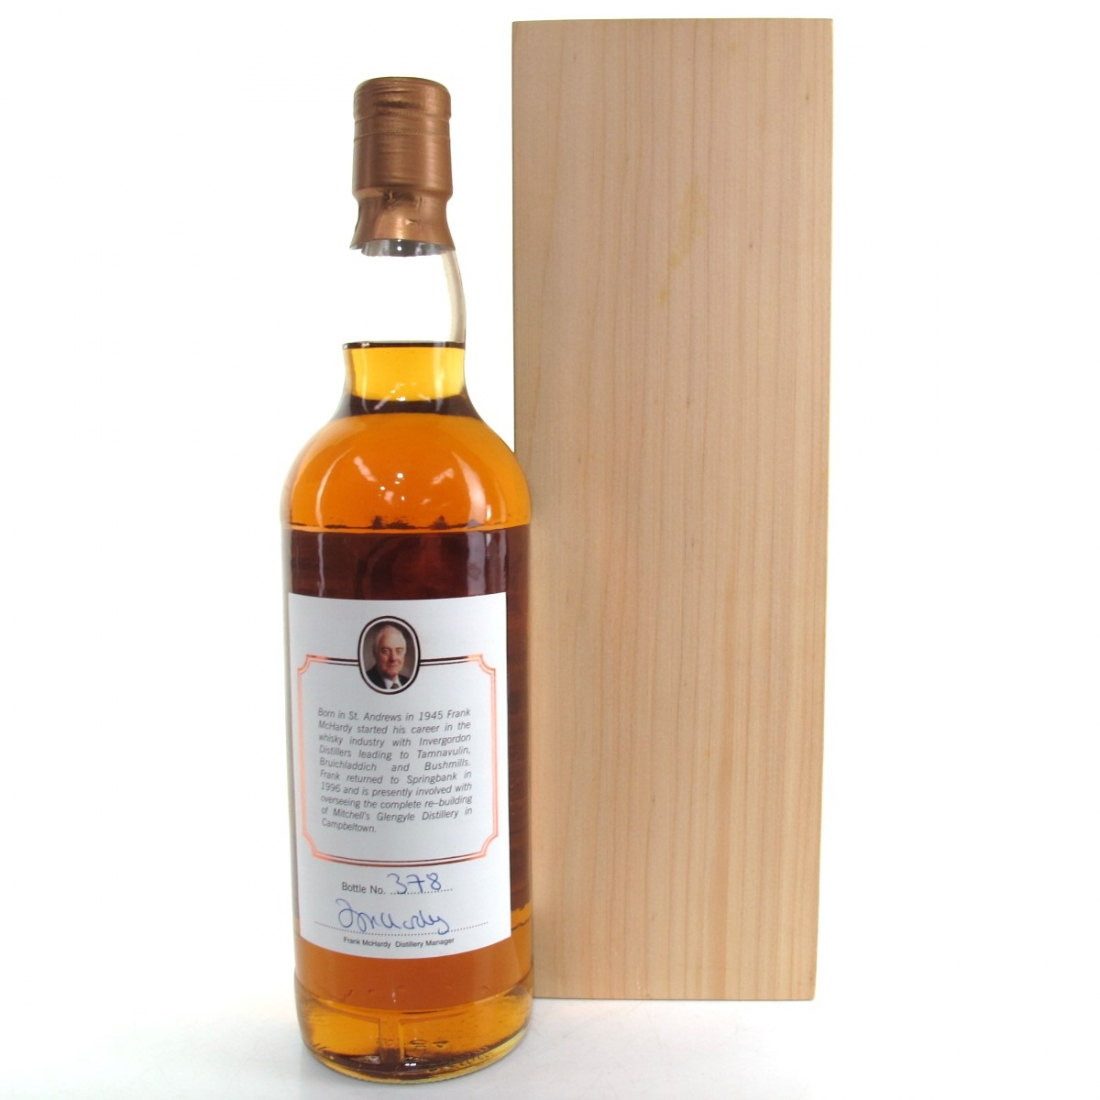 Springbank 25 Year Old Frank McHardy 40 Years in Distilling